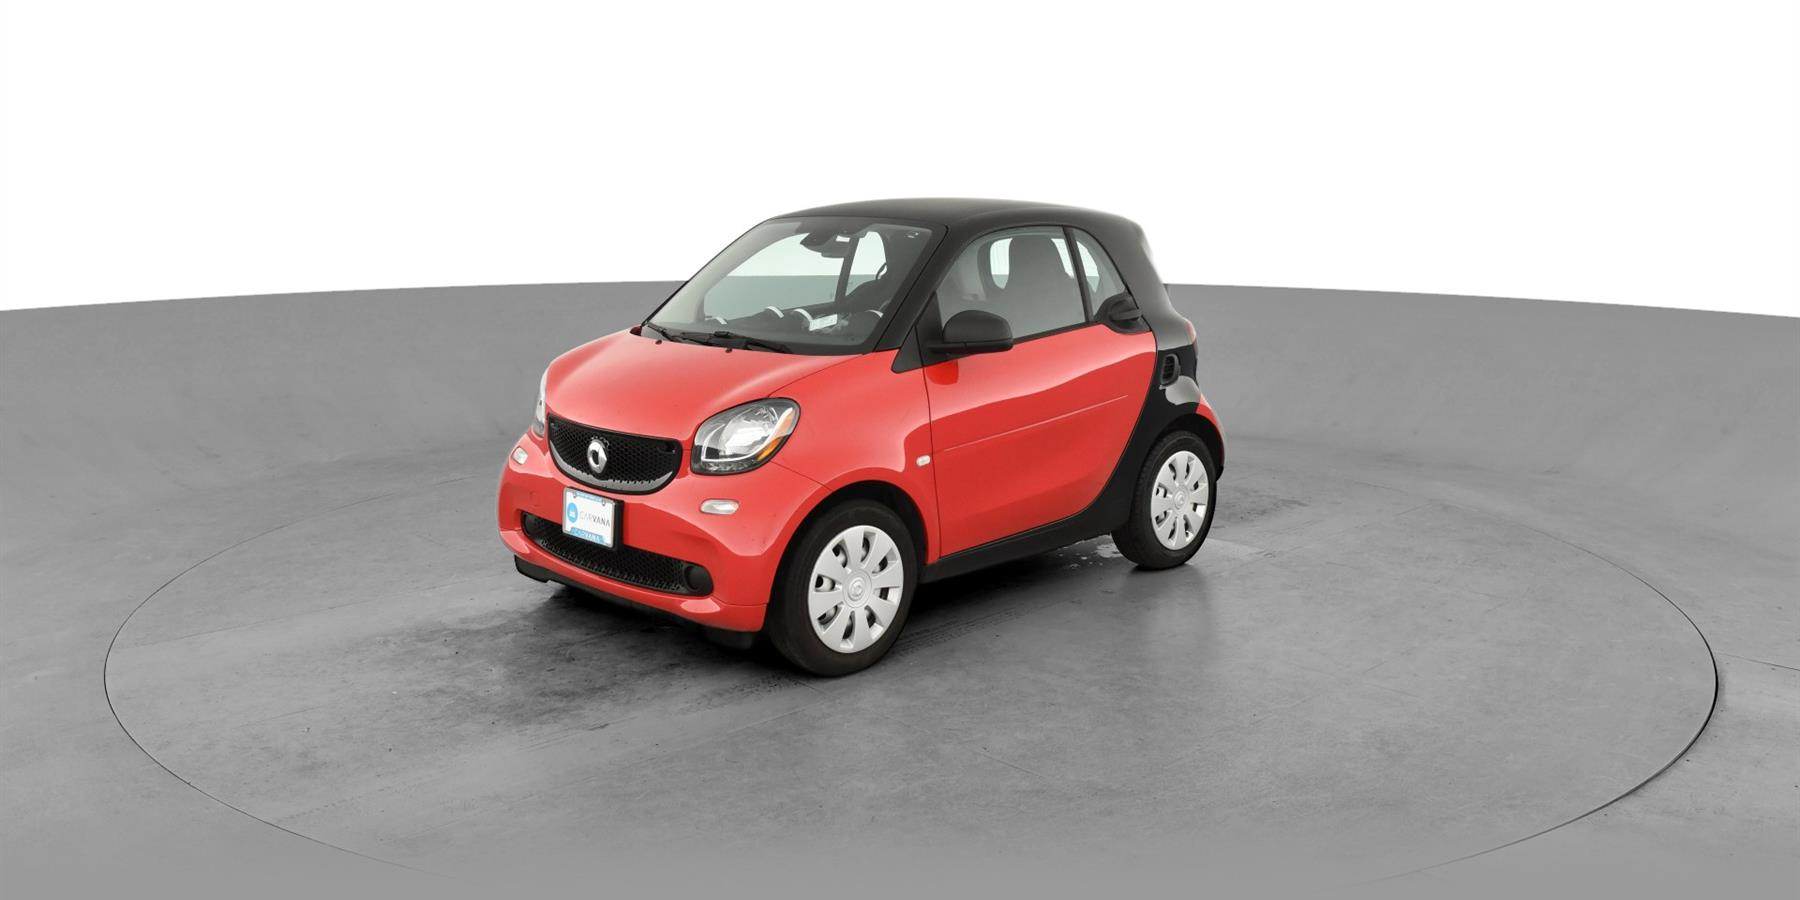 2016 smart fortwo Proxy Hatchback Coupe 2D for Sale | Carvana®